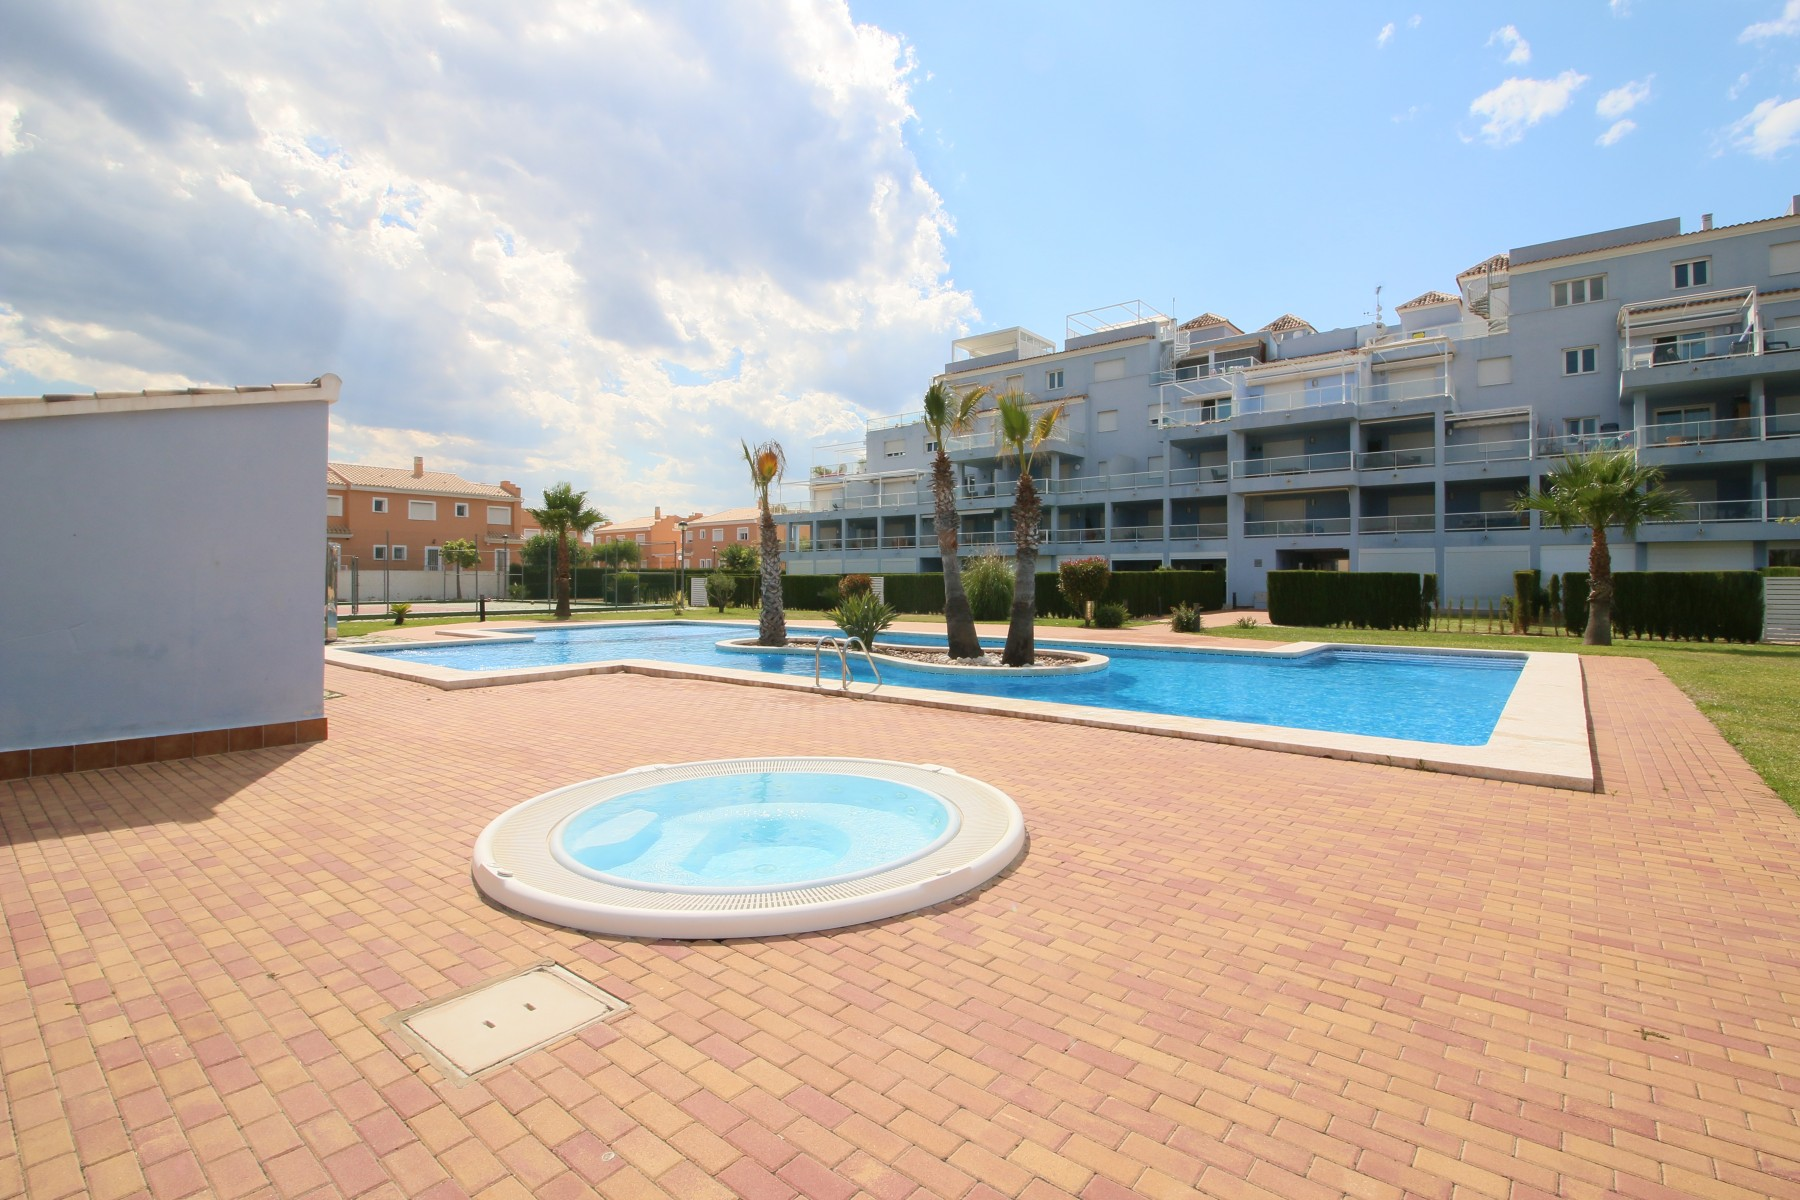 Villa Apartment Zafiro Real,Denia,Costa Blanca #2